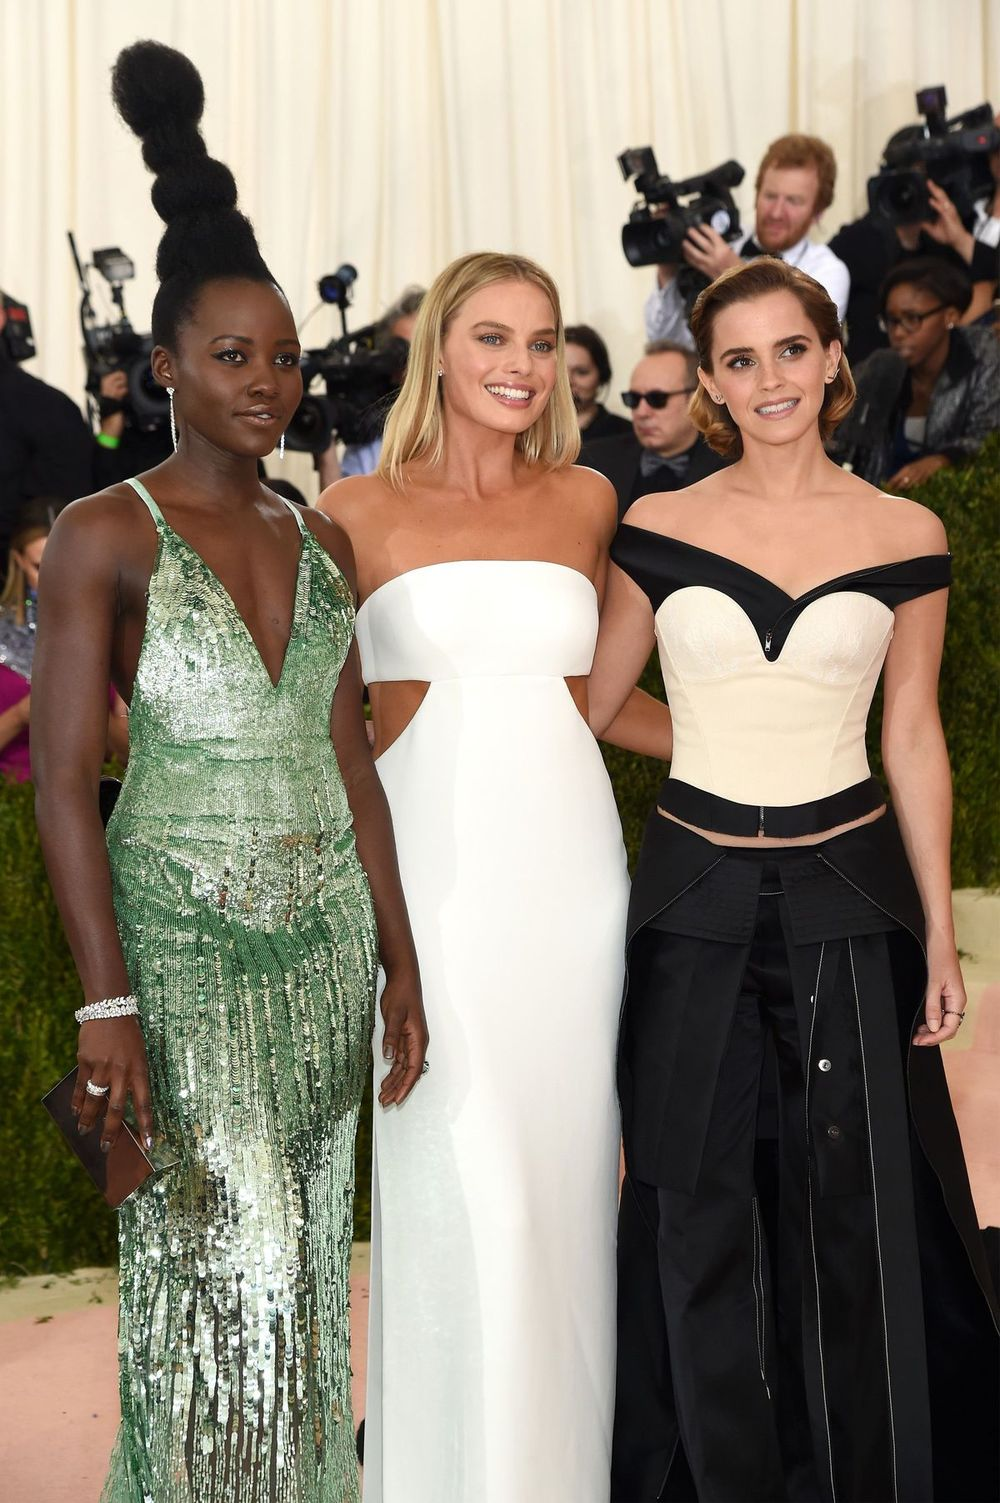 Lupita Nyong'o, Margot Robbie join Emma Watson in wearing Calvin Klein gowns designed to meet Livia Firth's Green Carpet challenge.